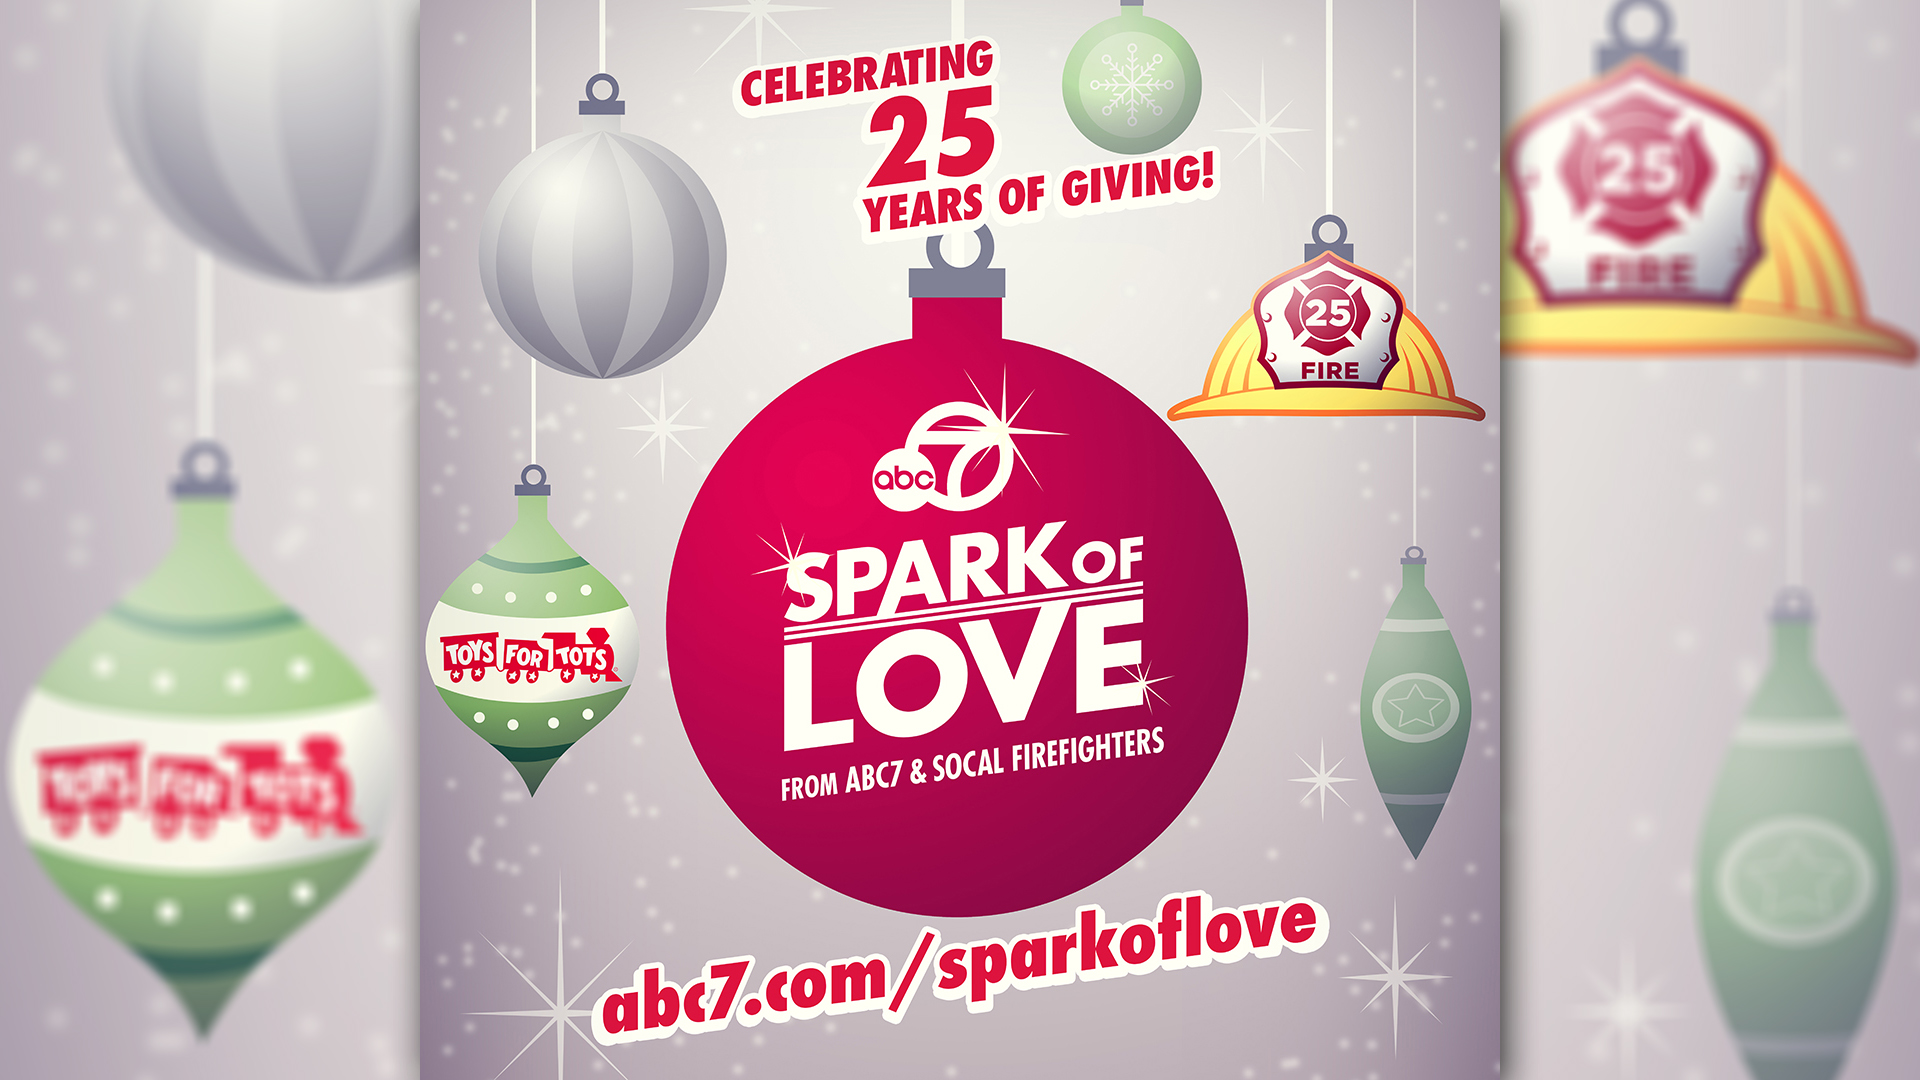 Spark of Love 2017 graphic